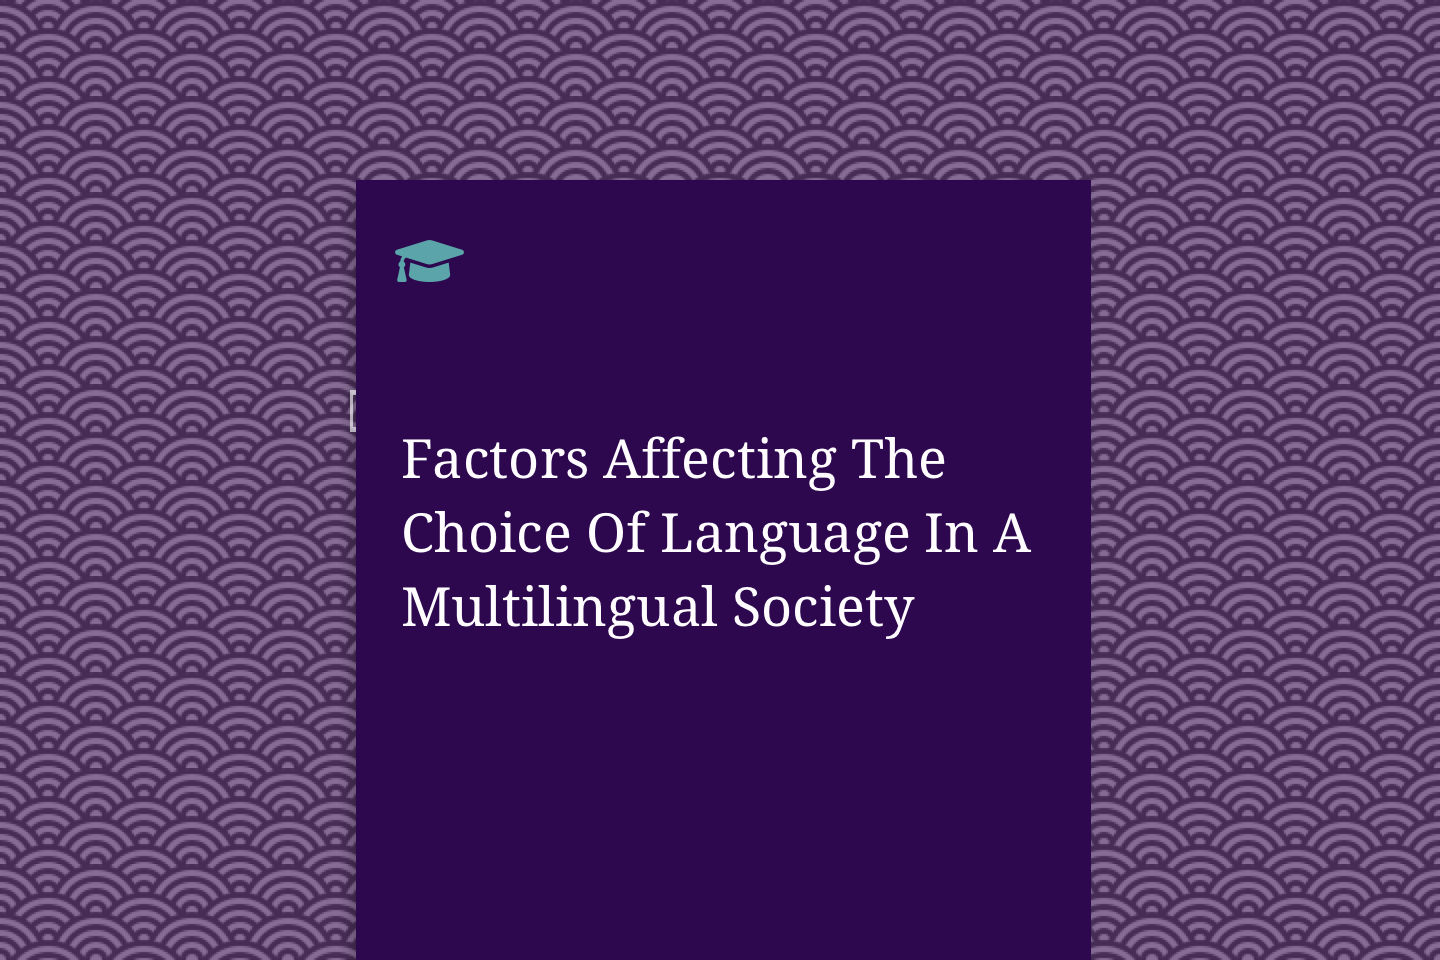 Factors Affecting The Choice Of Language In A Multilingual Society Factors Affecting The Choice Of Language In A Multilingual Society